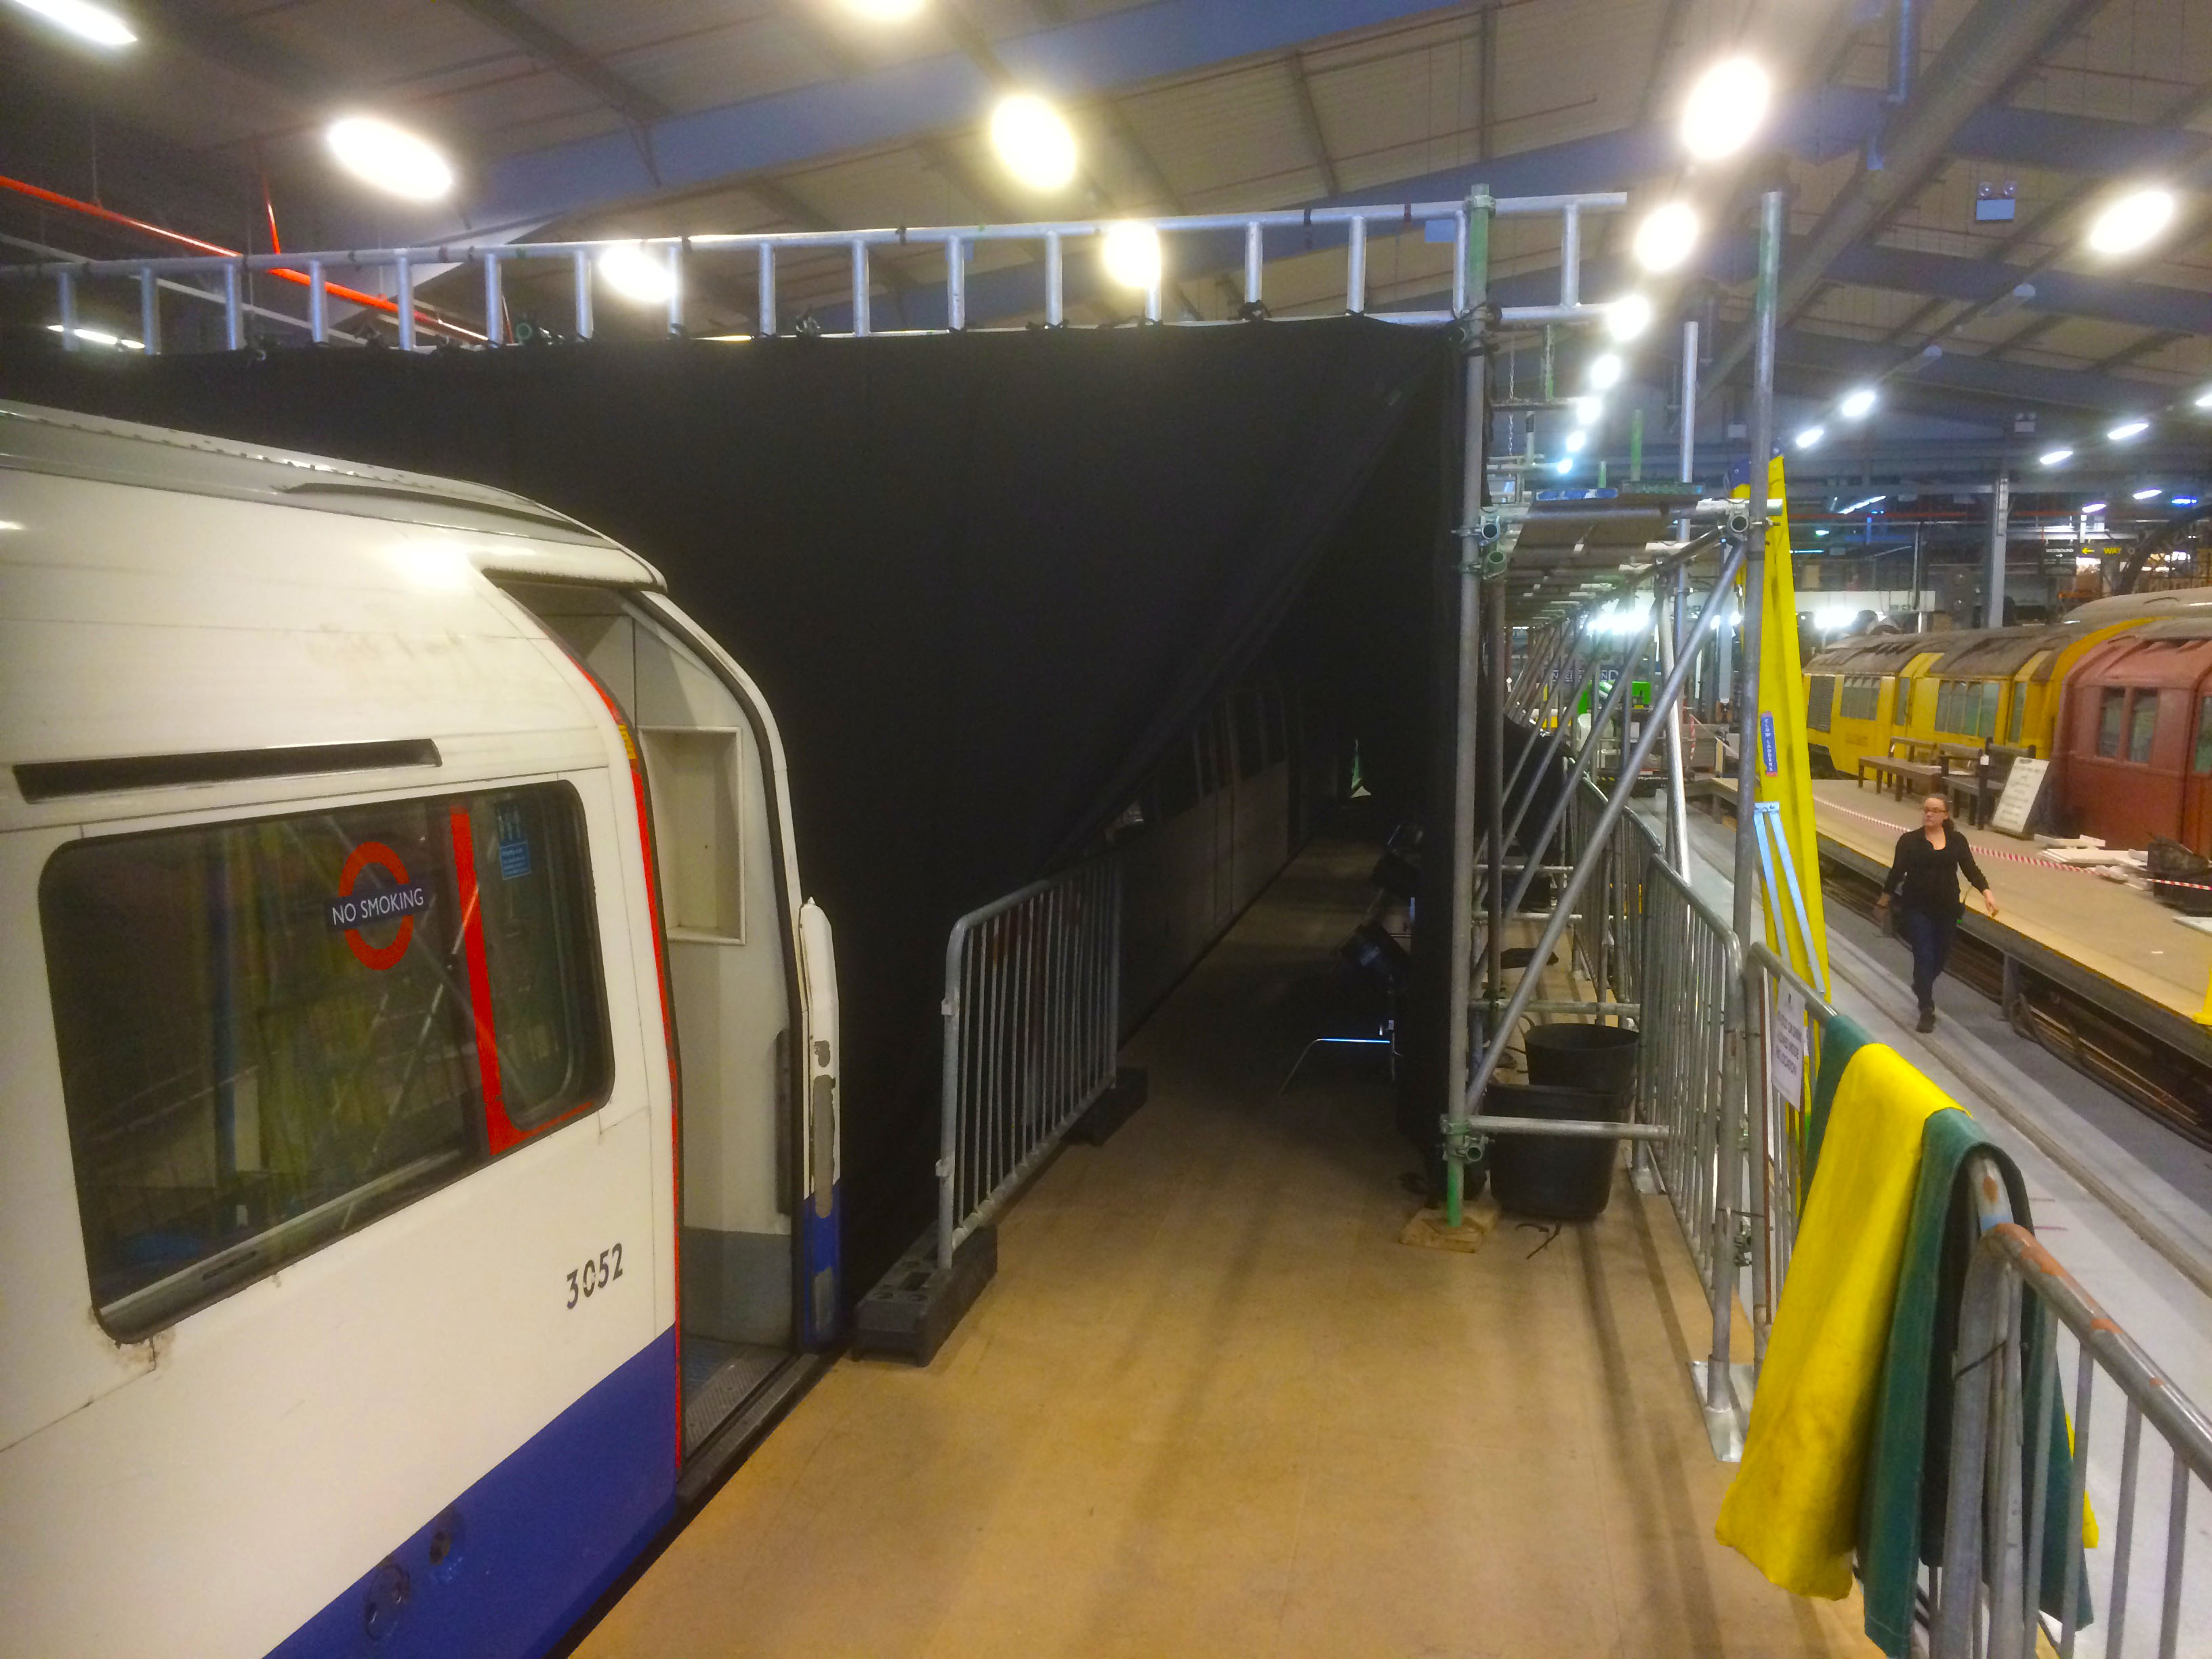 Setup of trusses in a warehouse, with a train modelling the underground tube station, and another train in the background.